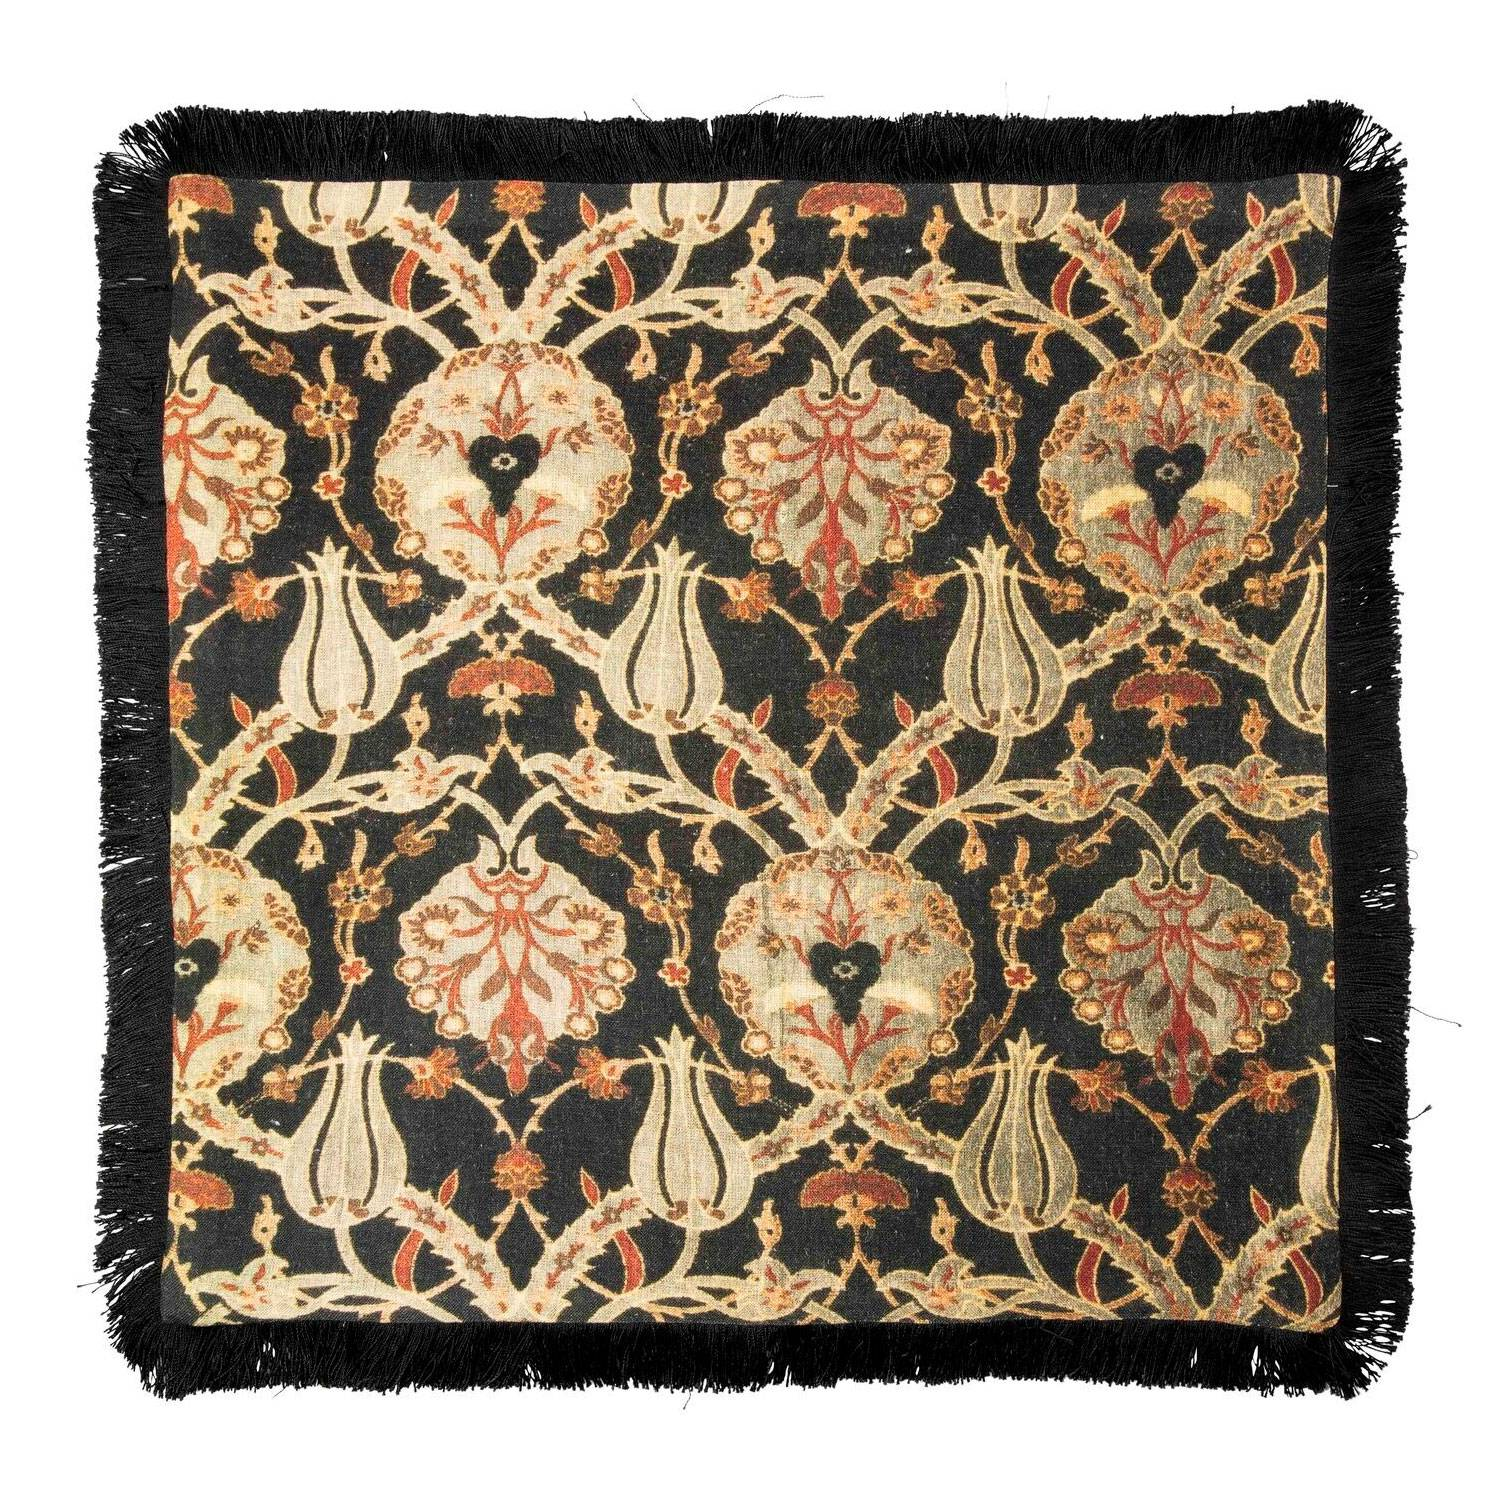 Day Home Day Pomagranate Cushion Cover, Henna